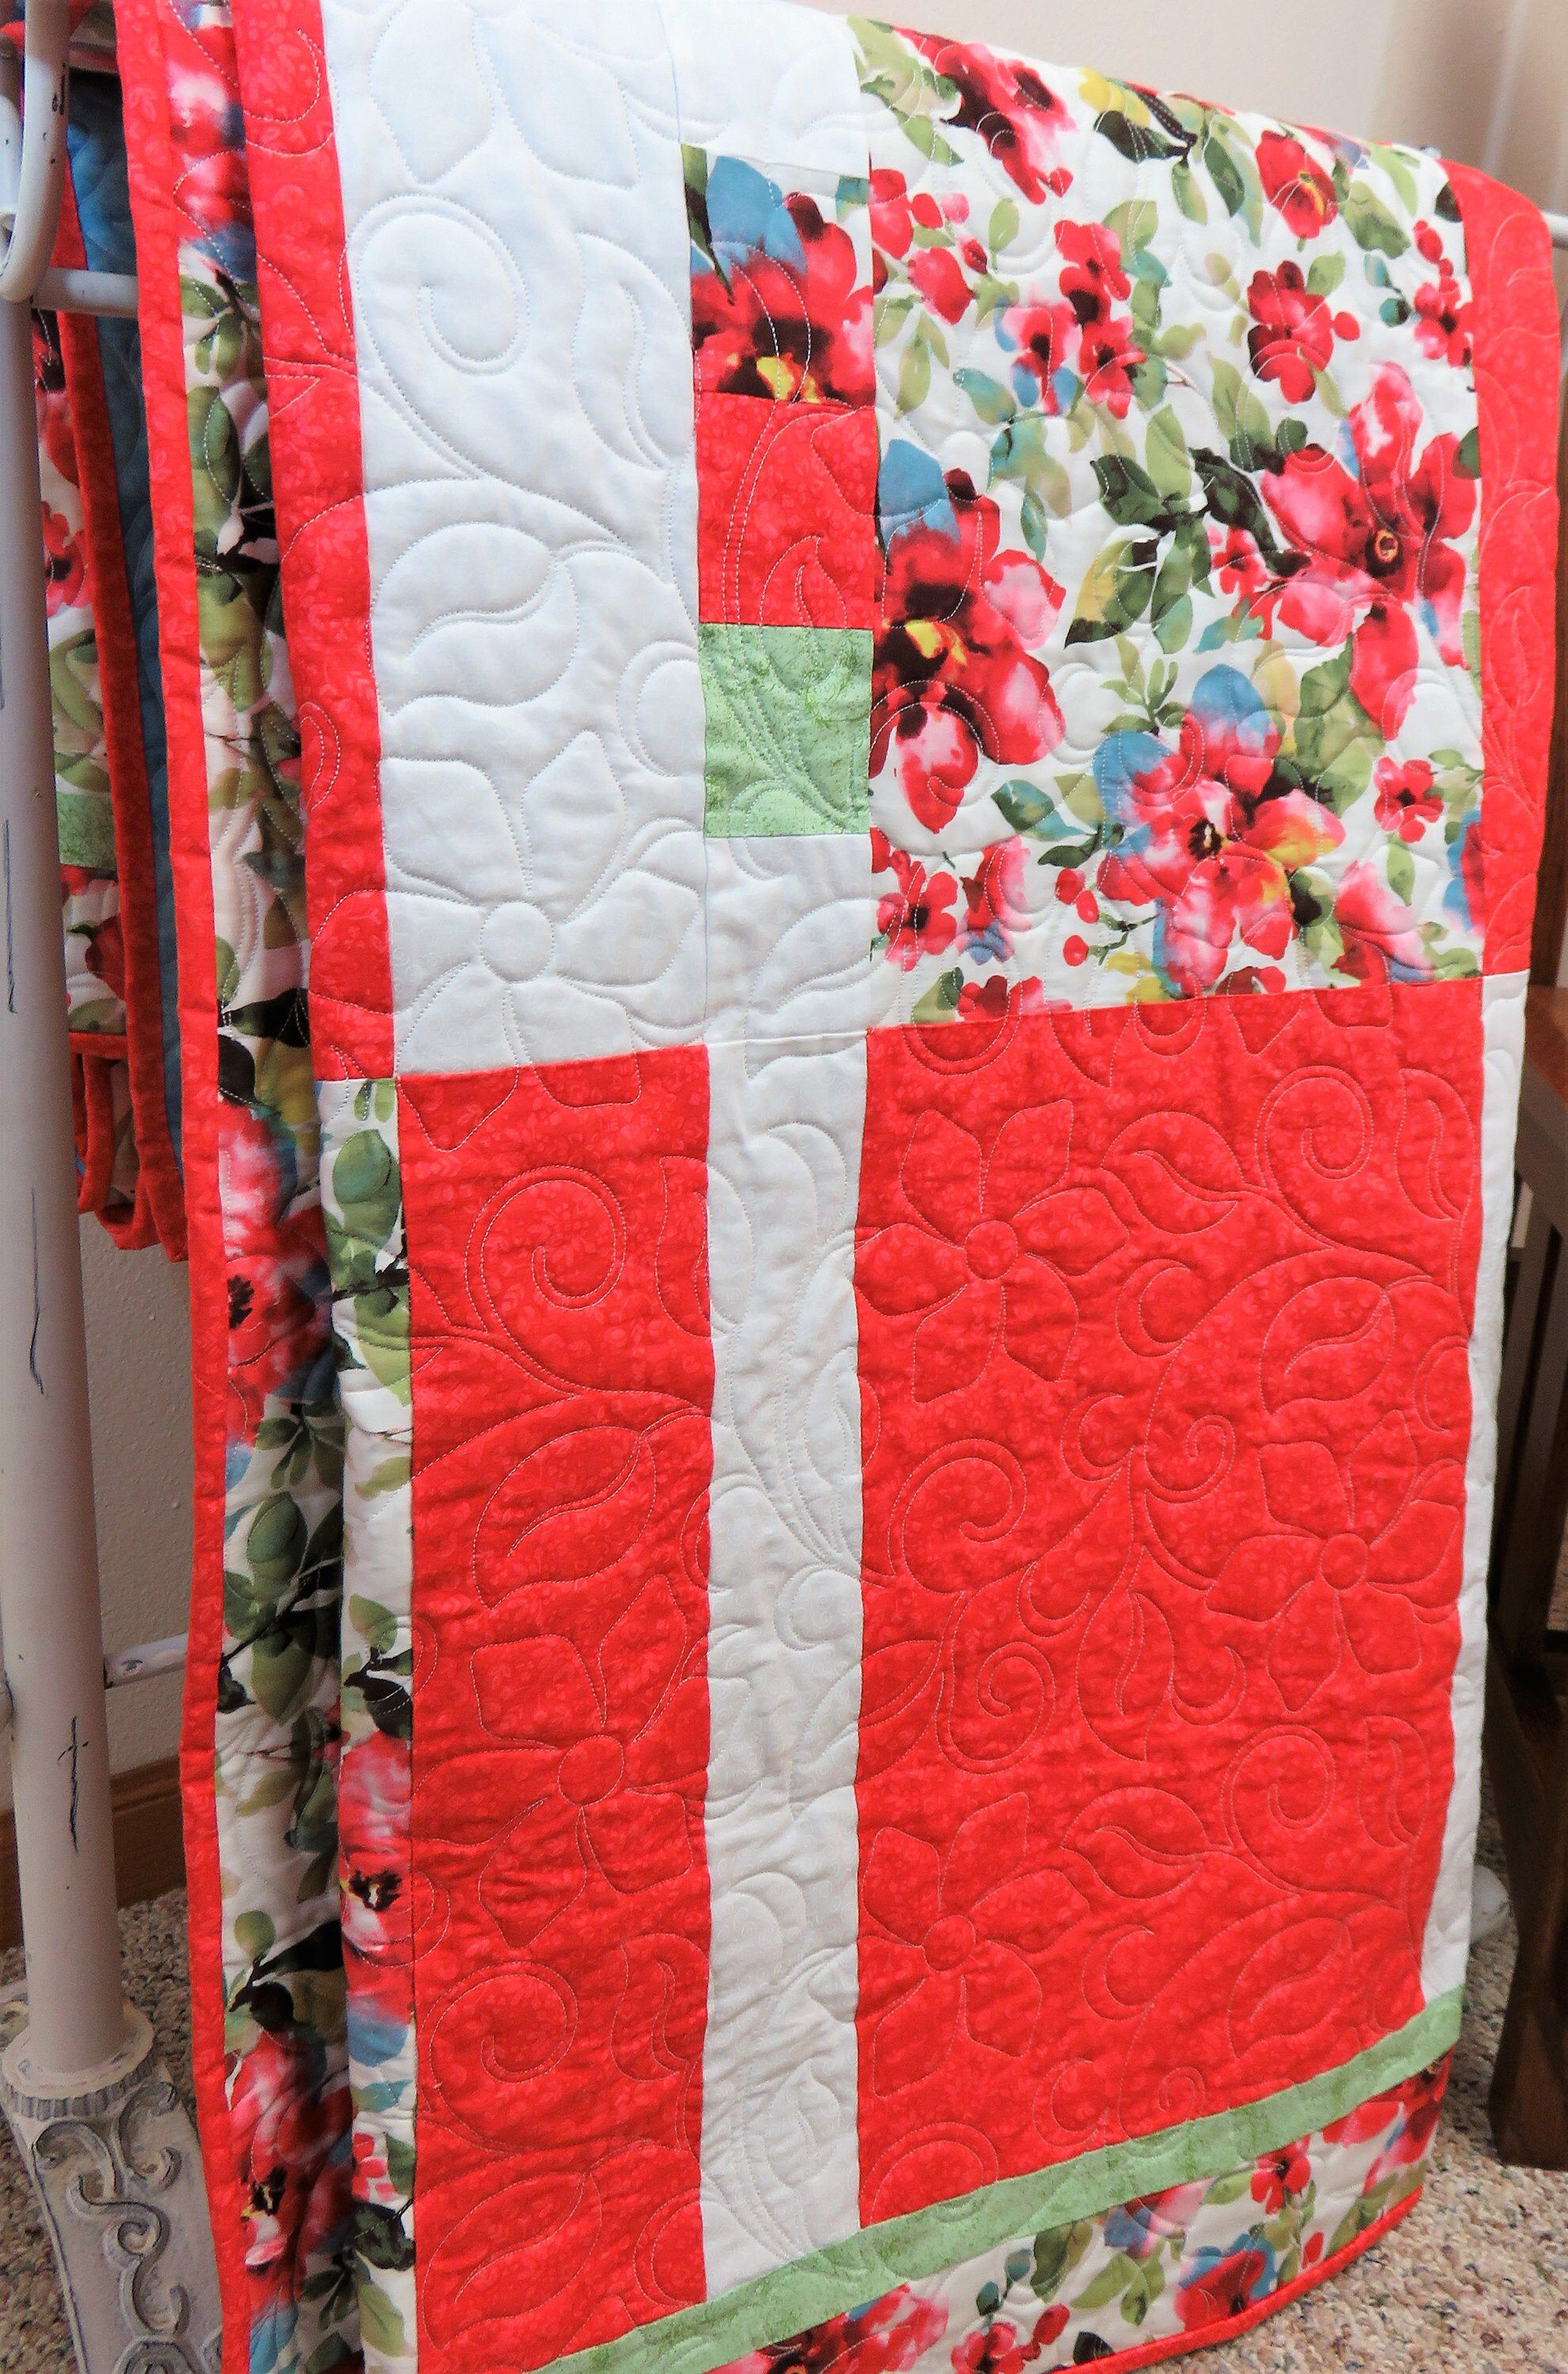 Handmade Quilt for Sale, Handmade Queen Size Quilt, Double Size